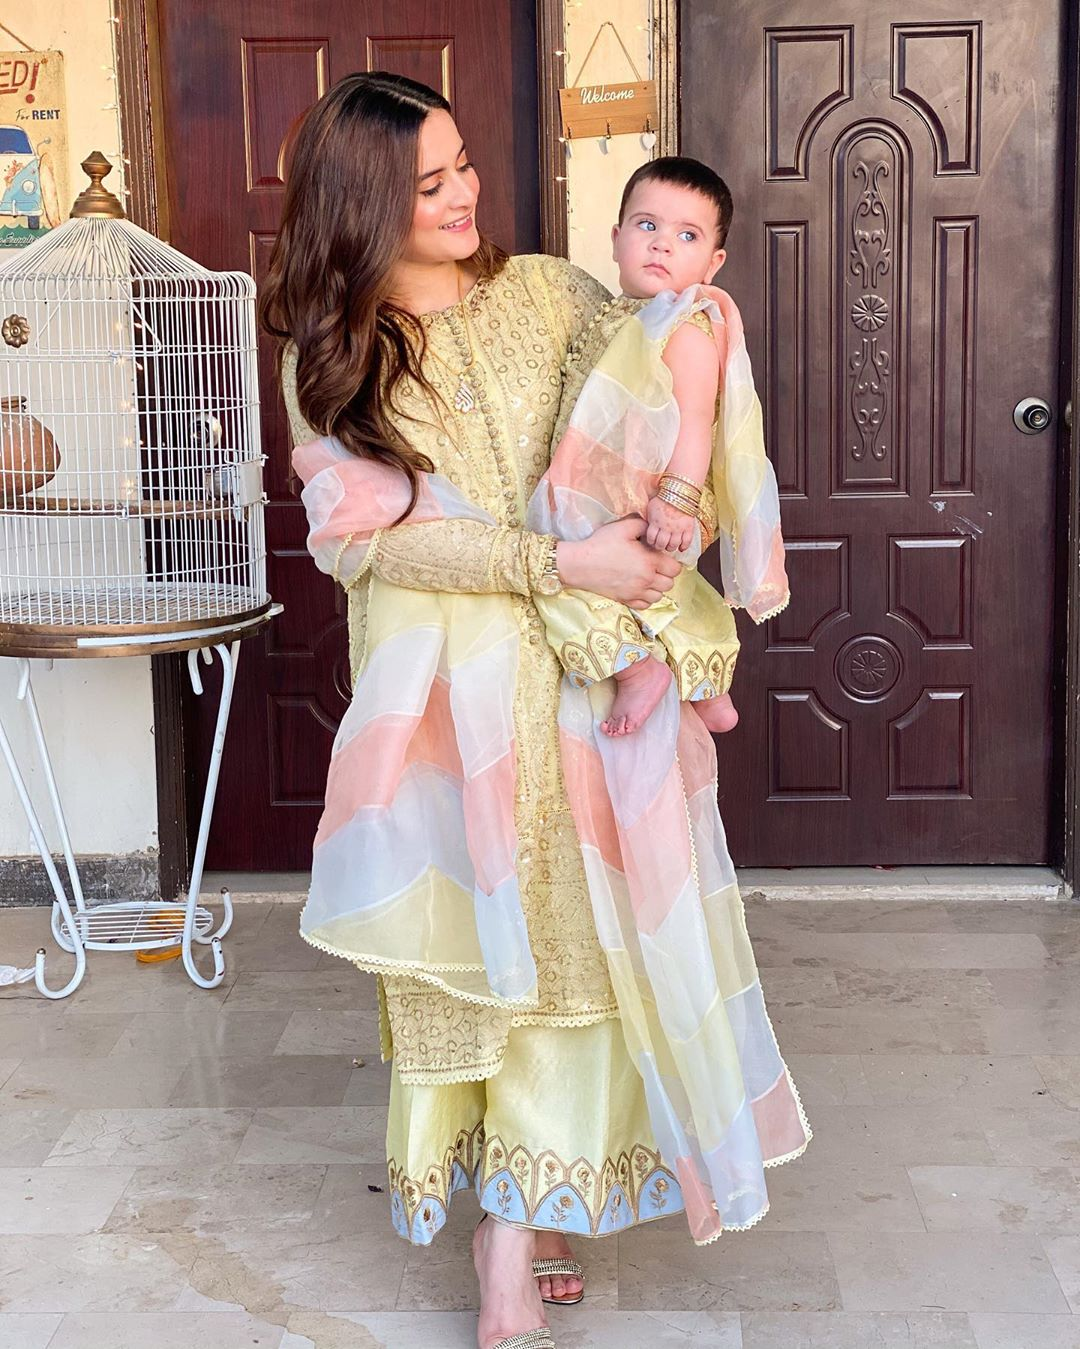 aimankhan.official 101216509 676407549820275 3977225162679927052 n